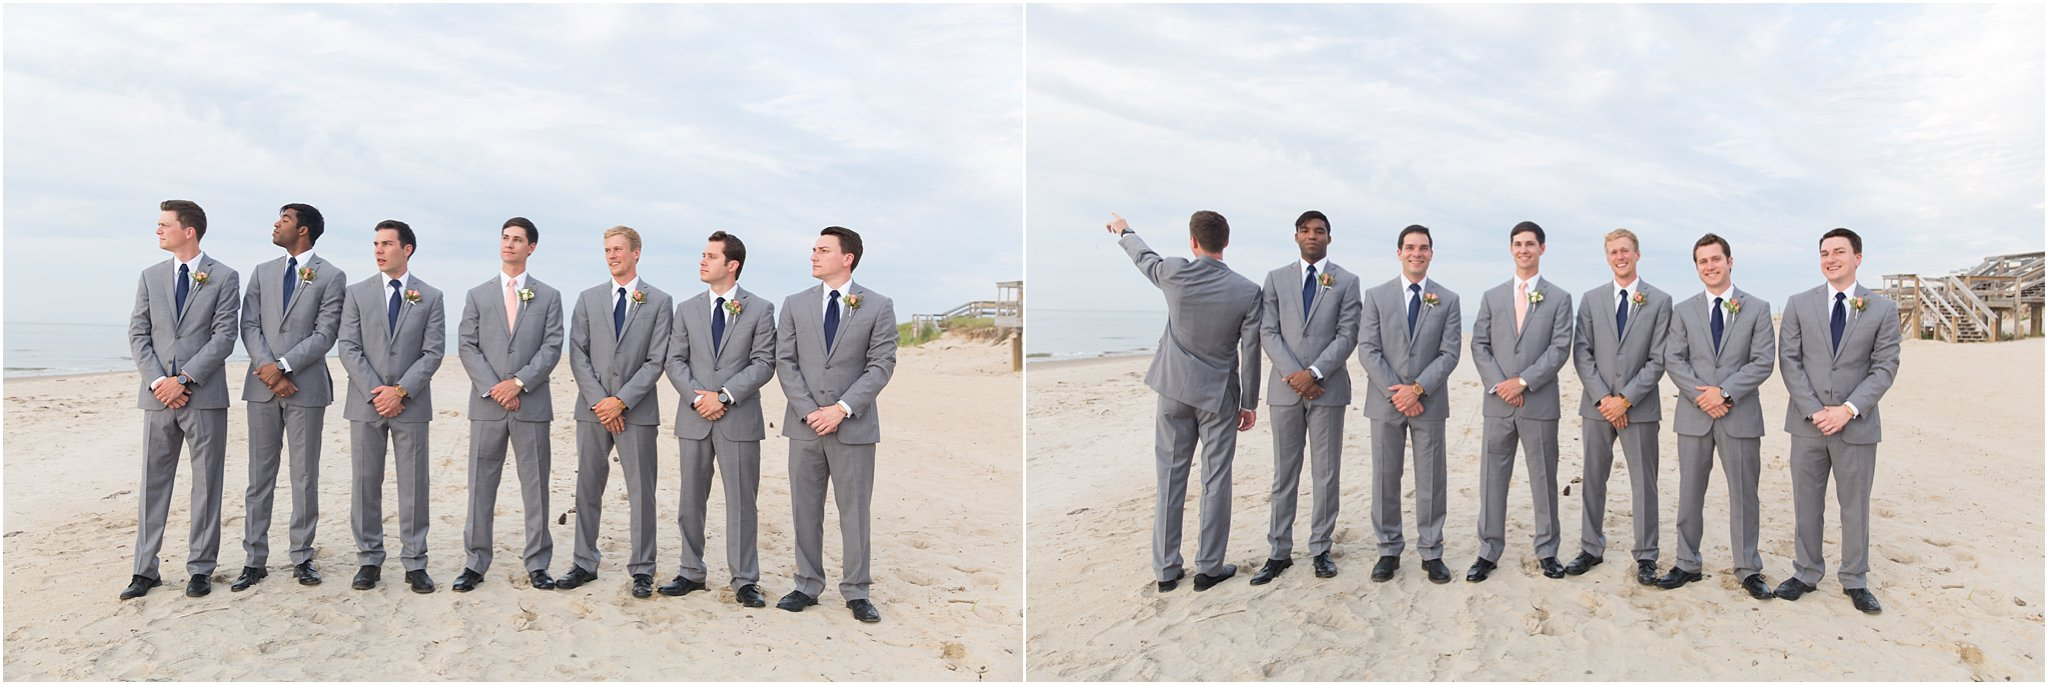 jessica_ryan_photography_wedding_photography_virginiabeach_virginia_candid_authentic_wedding_portraits_marina_shores_yacht_club_chesapeake_bay_1860